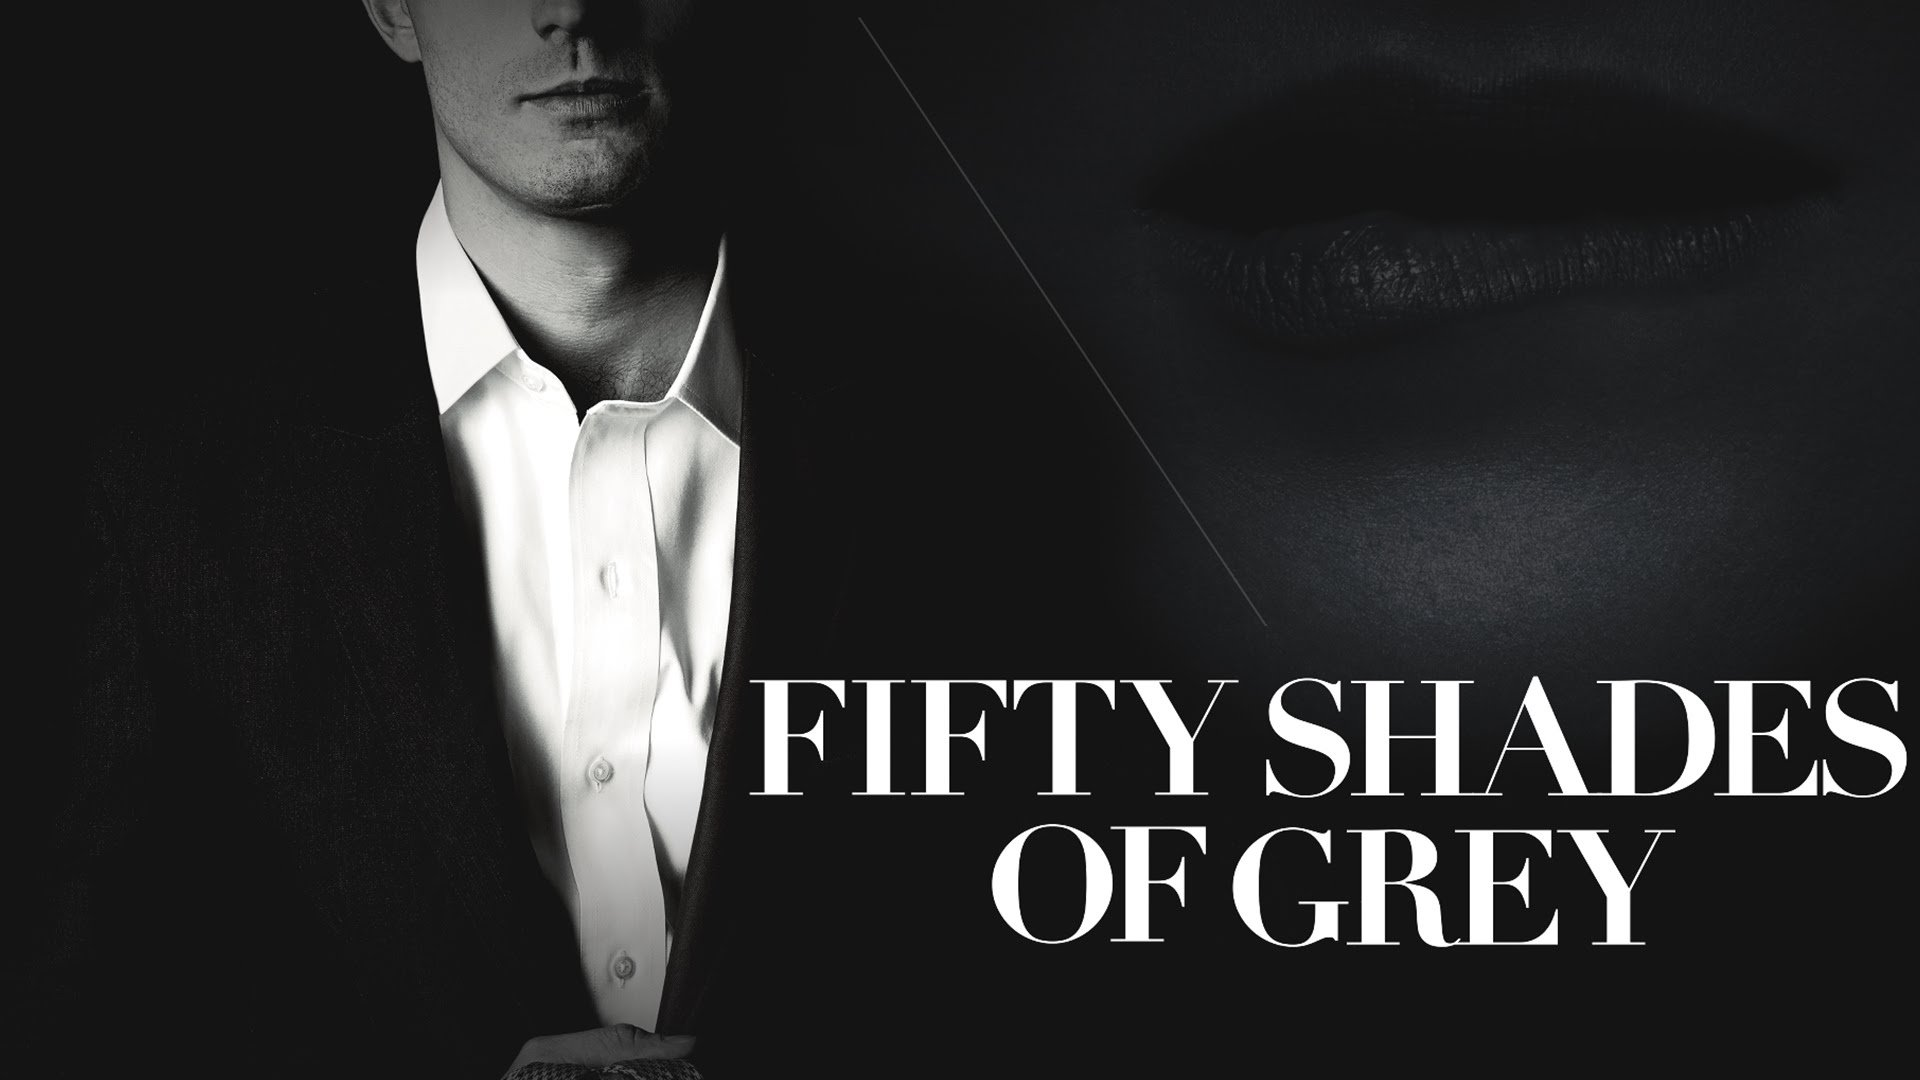 Fifty movie the shades of download grey Fifty Shades